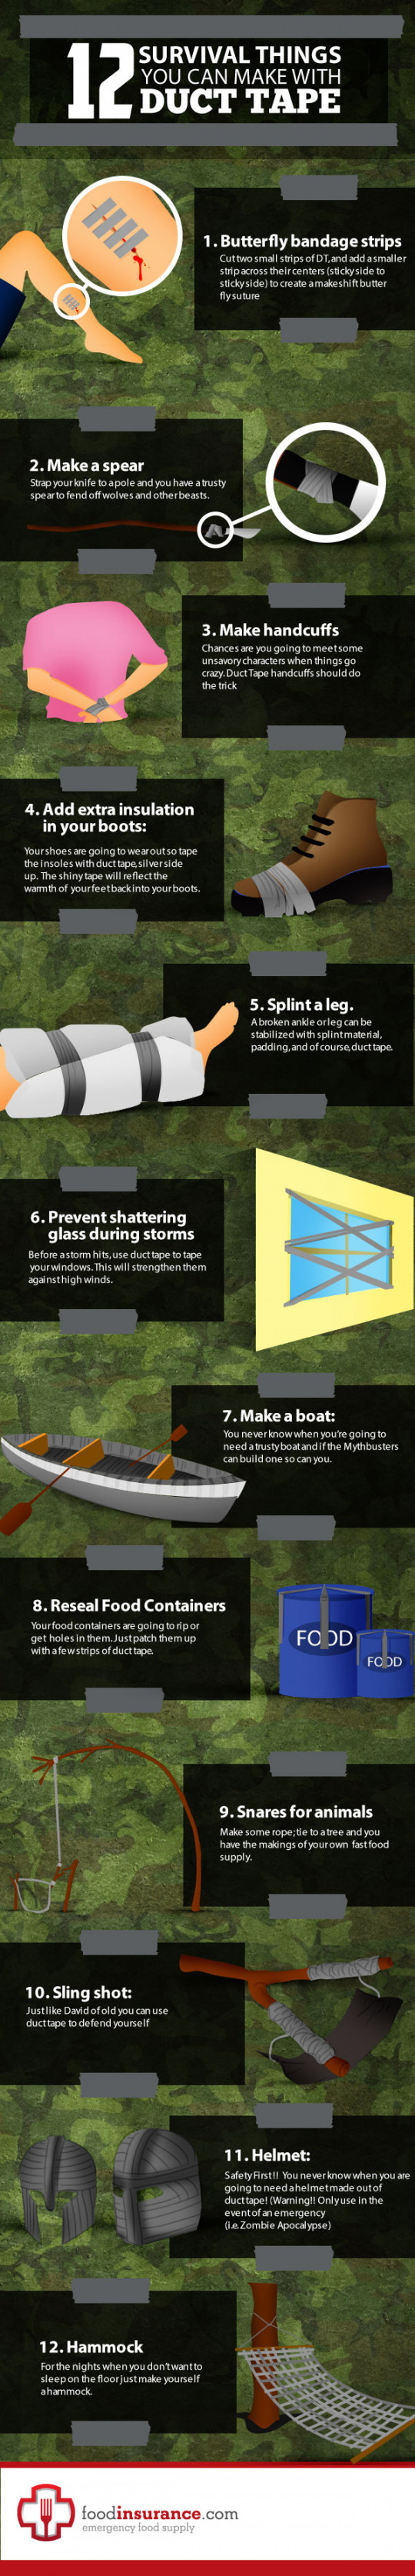 12 Survival Things You Can Make With Duct Tape